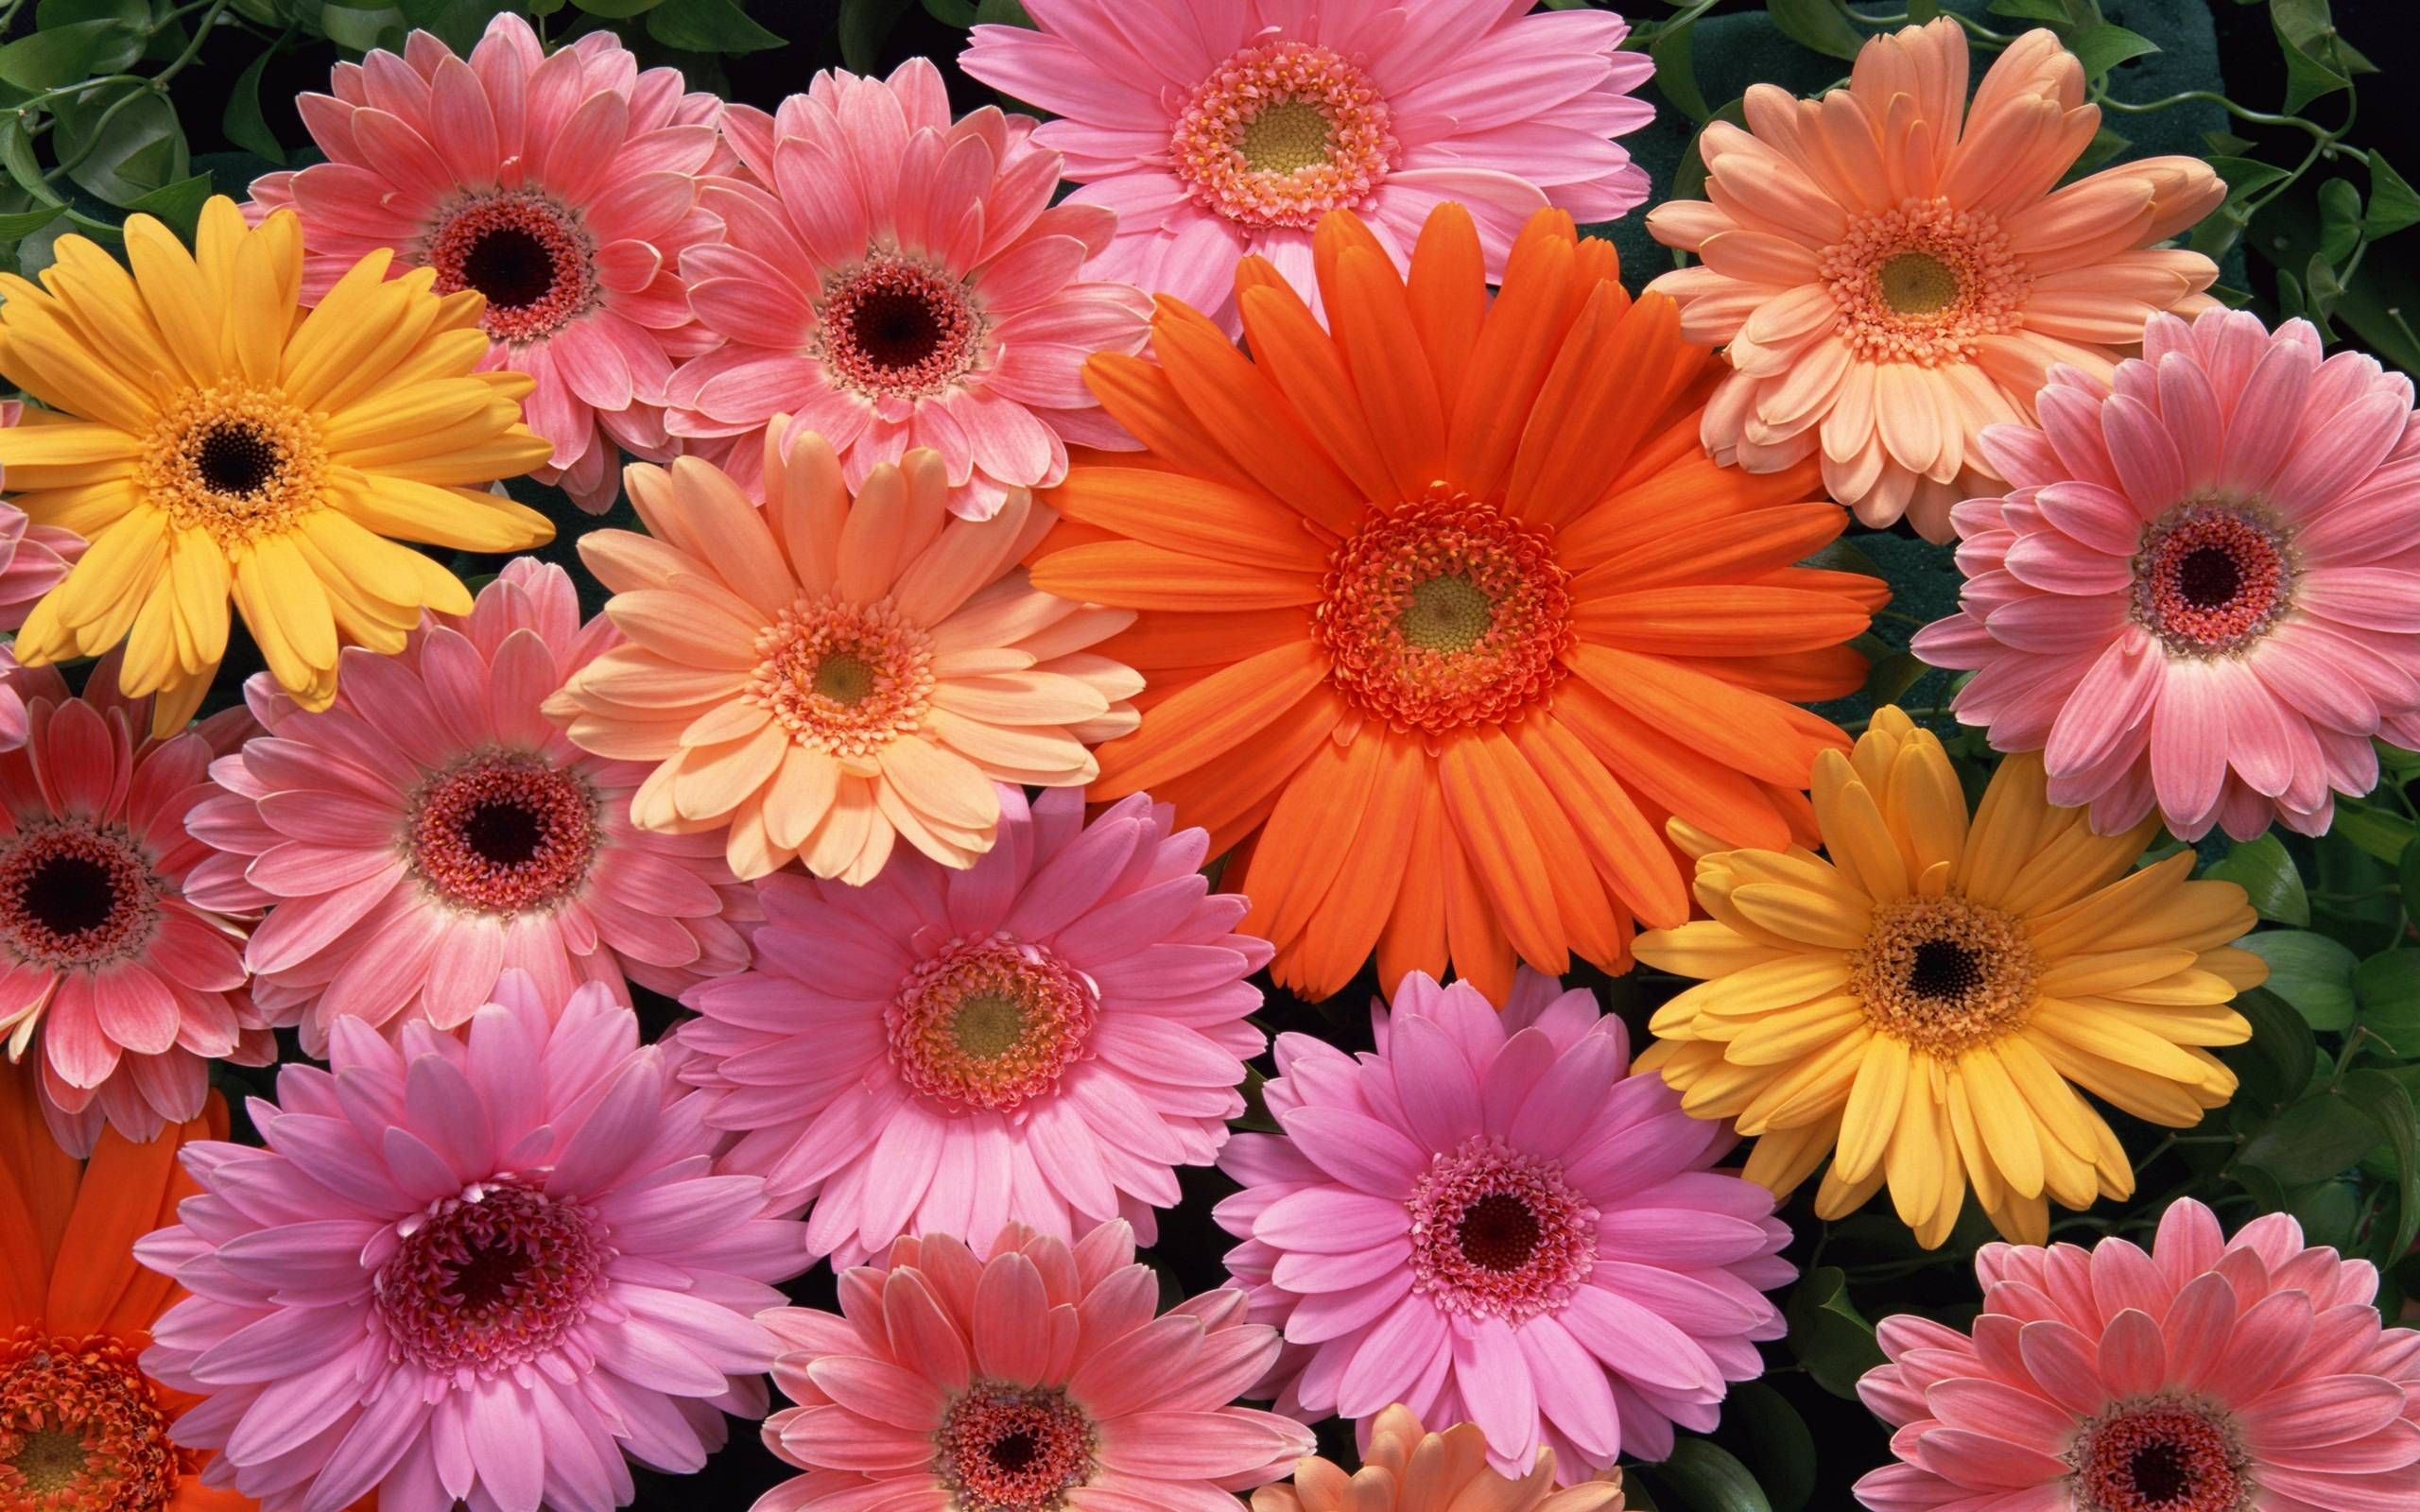 Download This Awesome Wallpaper Wallpaper Cave Beautiful Flowers Images Beautiful Flowers Pictures Free Flower Wallpaper